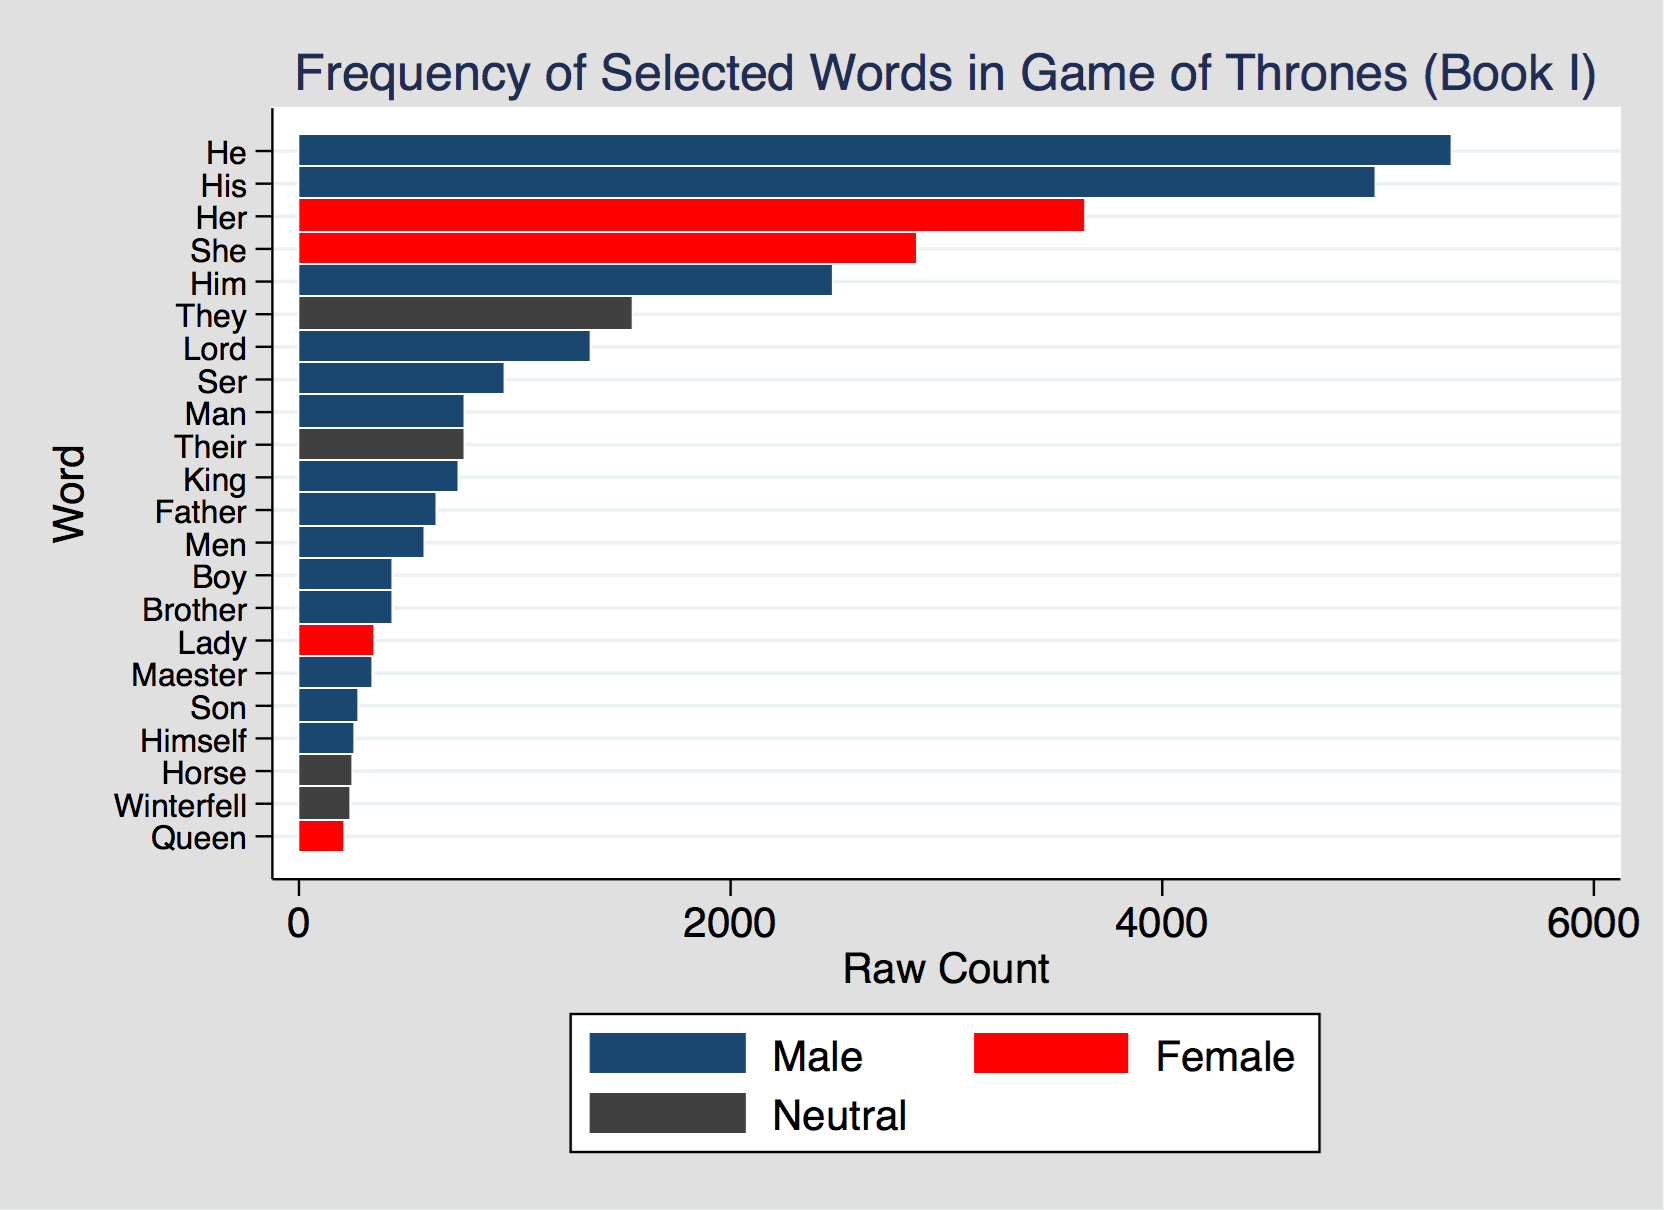 Game of Thrones word usage